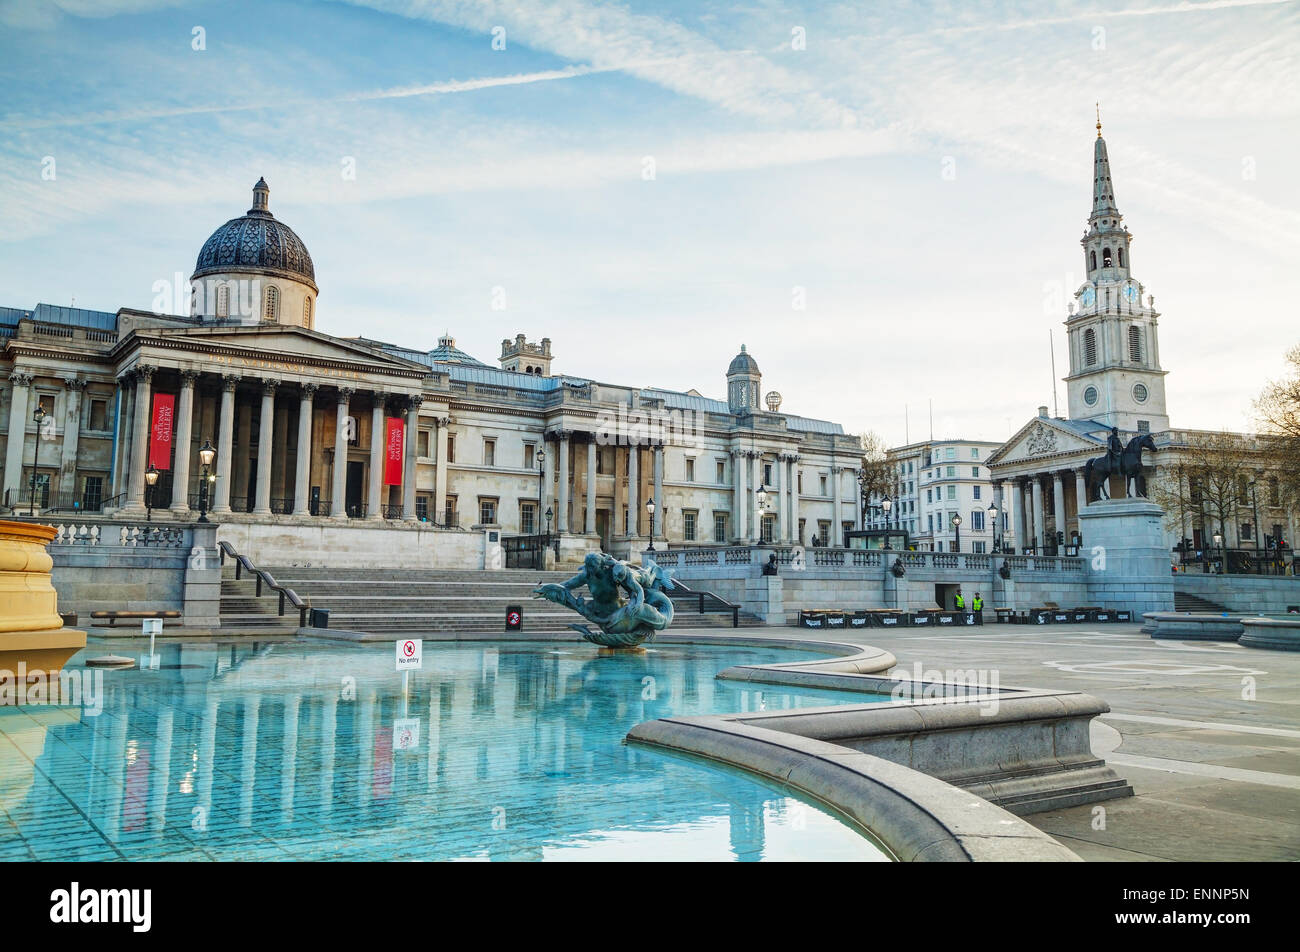 LONDON - APRIL 12: National Gallery building at Trafalgar square on April 12, 2015 in London, UK. Founded in 1824. - Stock Image